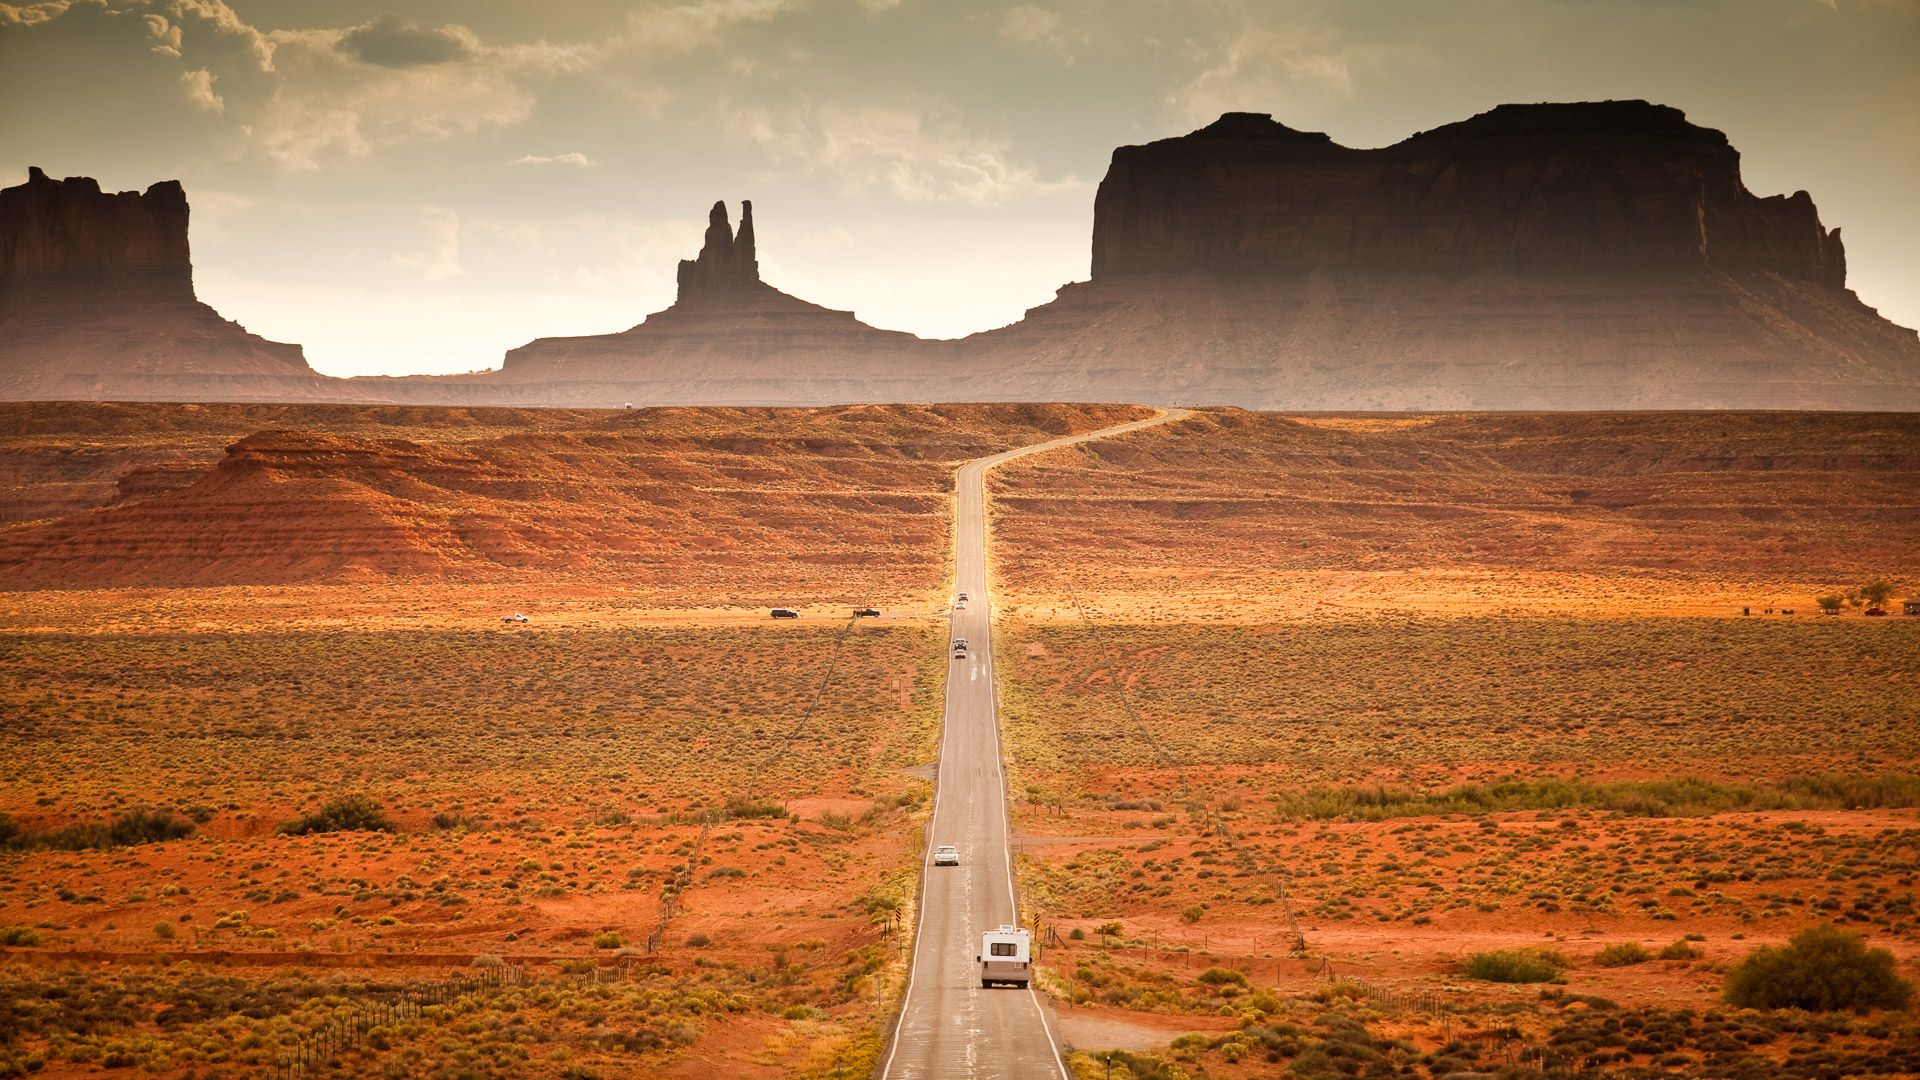 Motor home camper on vacation in the southwest USA red rock landscape near Monument Valley Arizona.